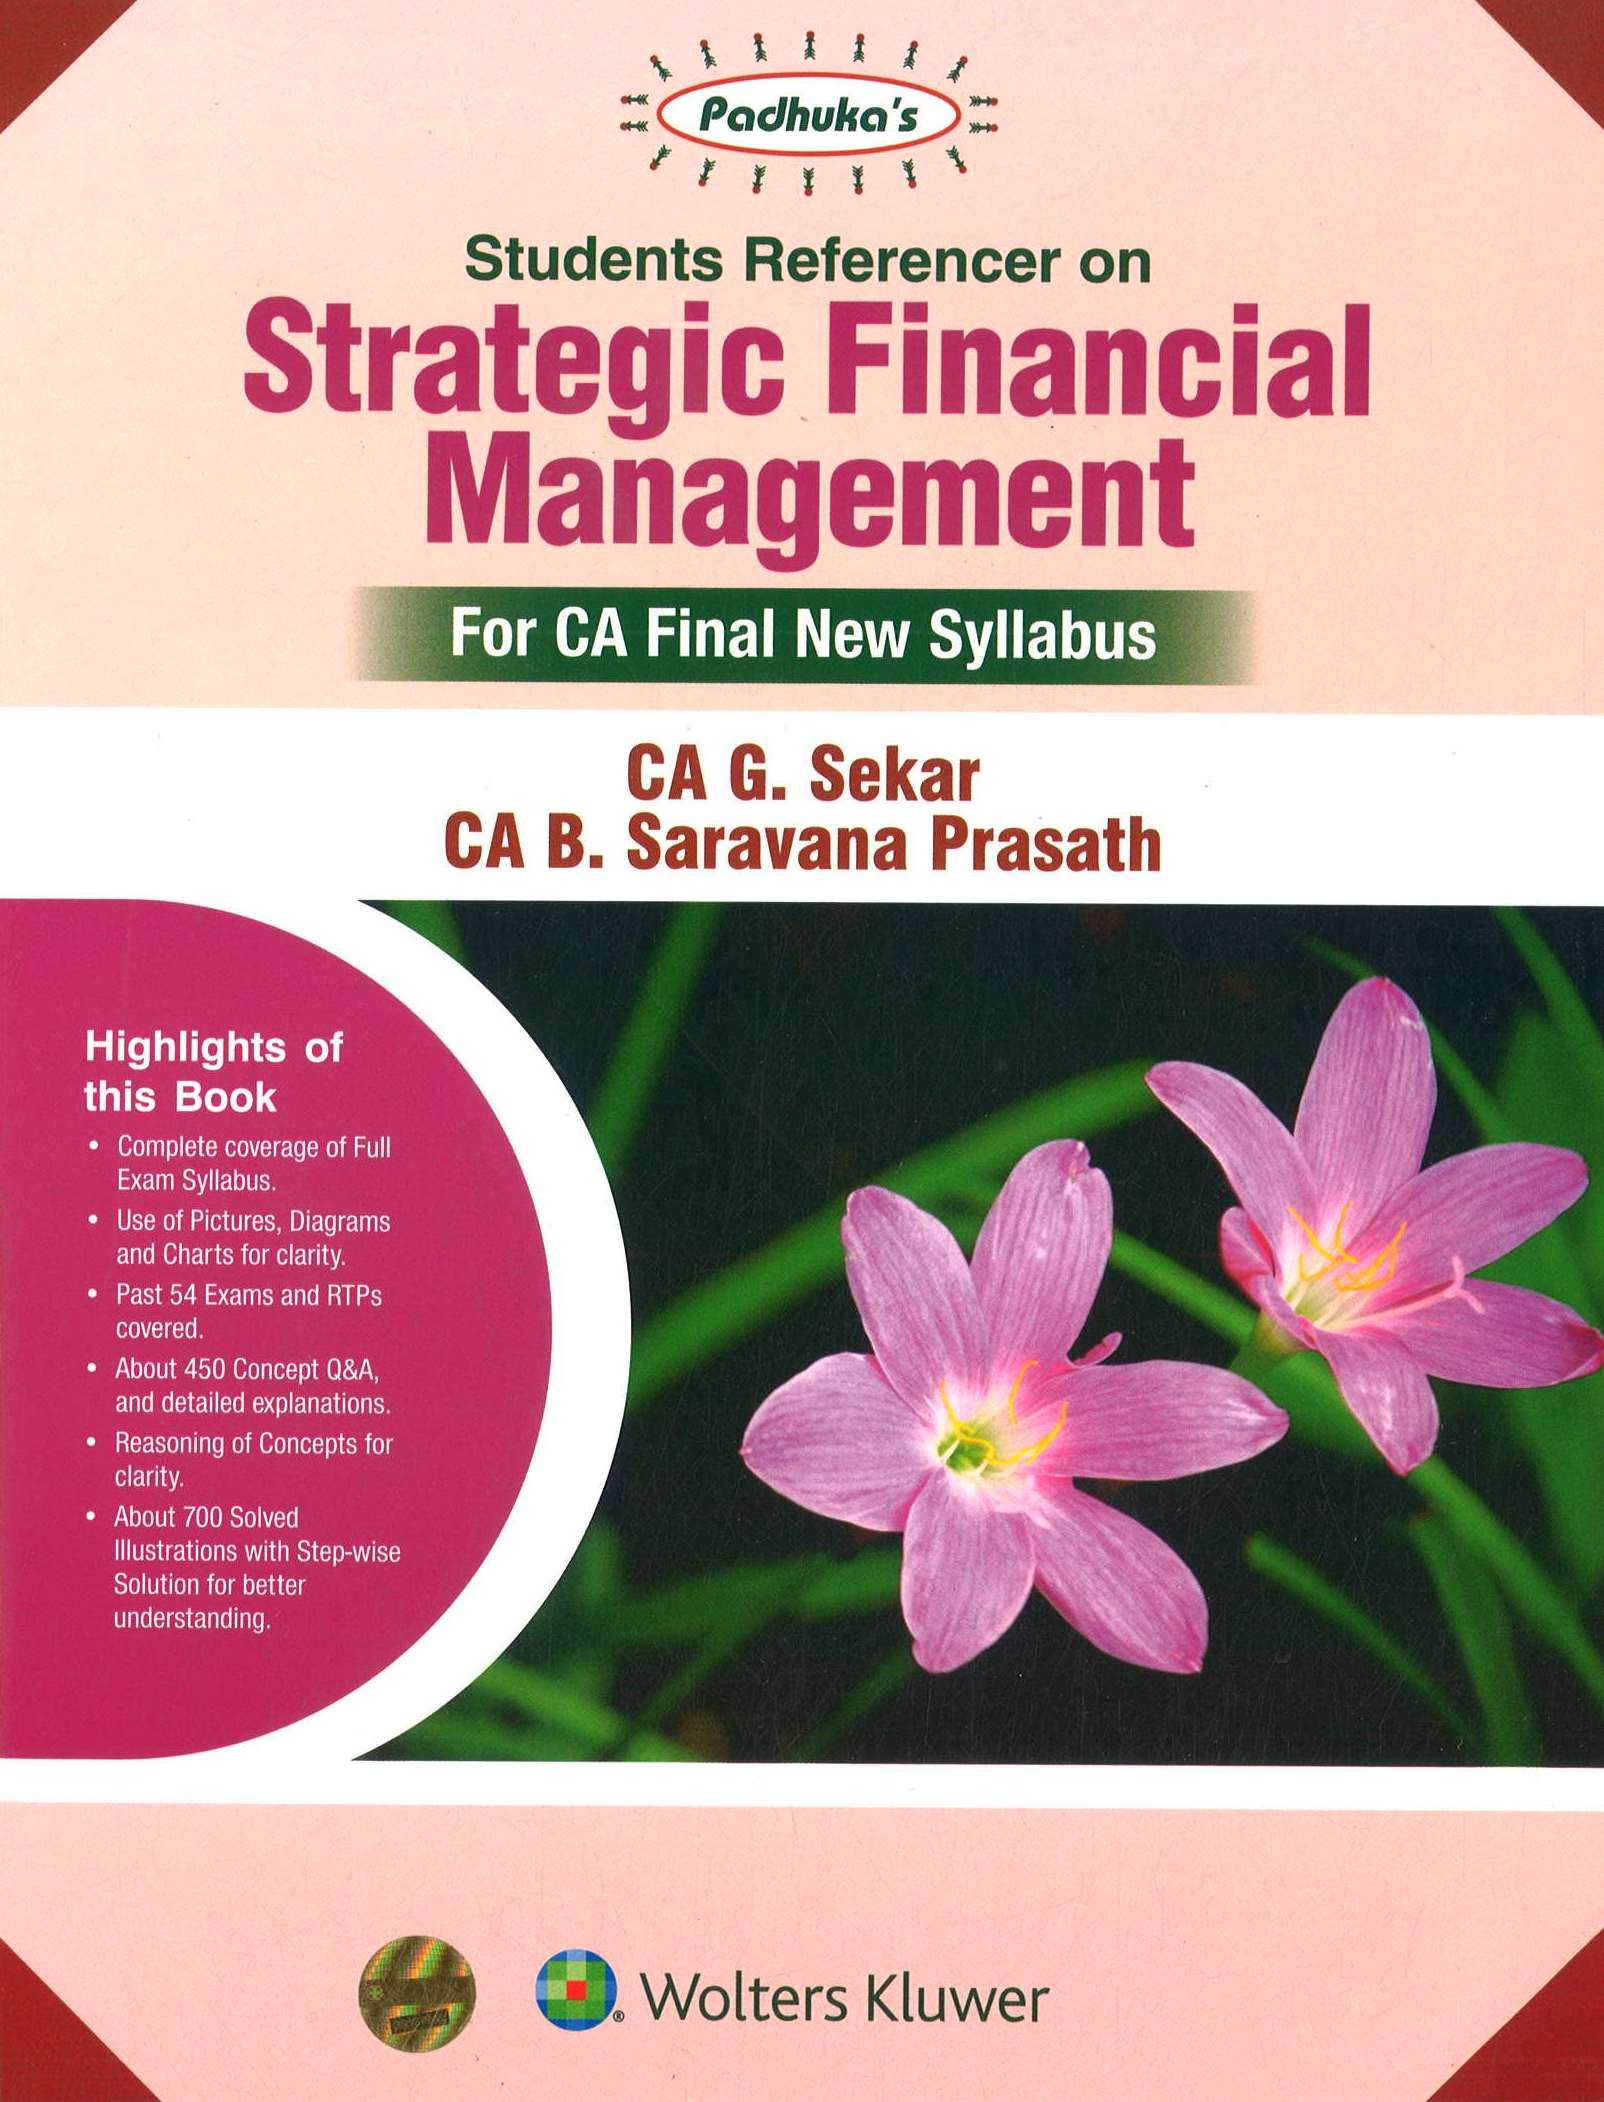 CCH Padhuka Students Referencer on Strategic Financial Management For CA Final New Syllabus CA Final by G Sekar , B Sarvana Prasath Applicable for May 2020 Exam